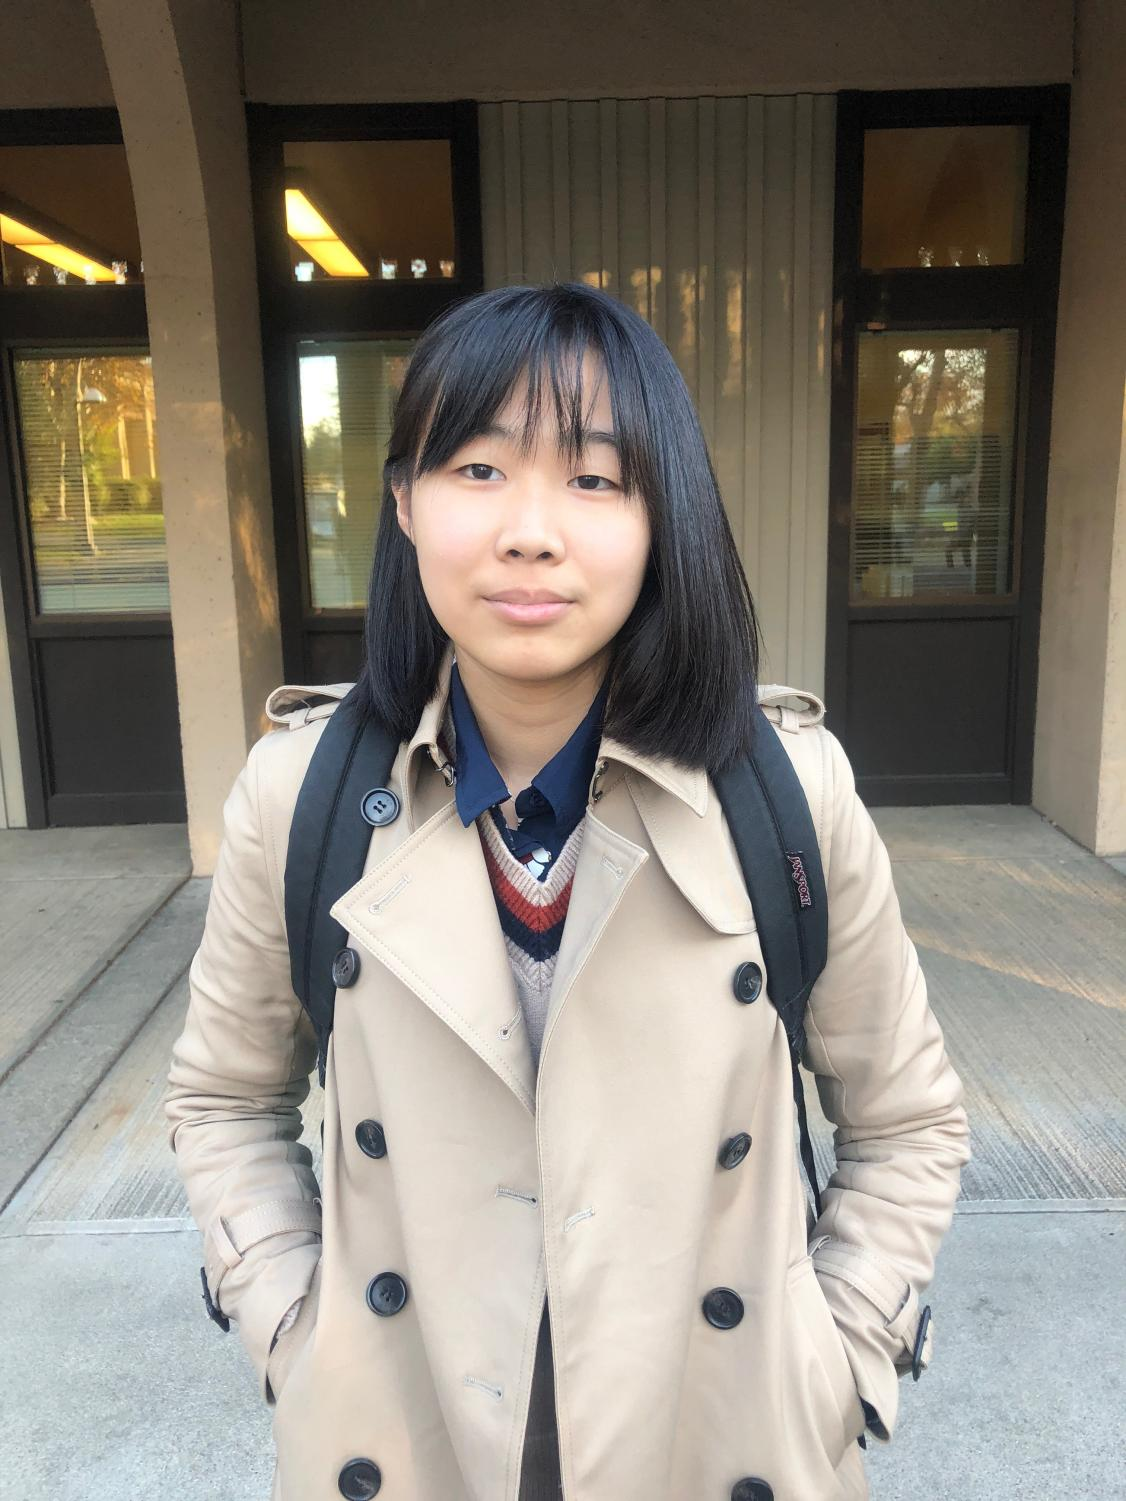 Shi-qi+Liang%2C+19%2C+finance+major+%22I%E2%80%99m+going+home+to+play+with+friends+and+have+a+break.+Maybe+my+friends+and+I+are+going+to+have+a+trip.+Play+games+with+my+friends%2C%22